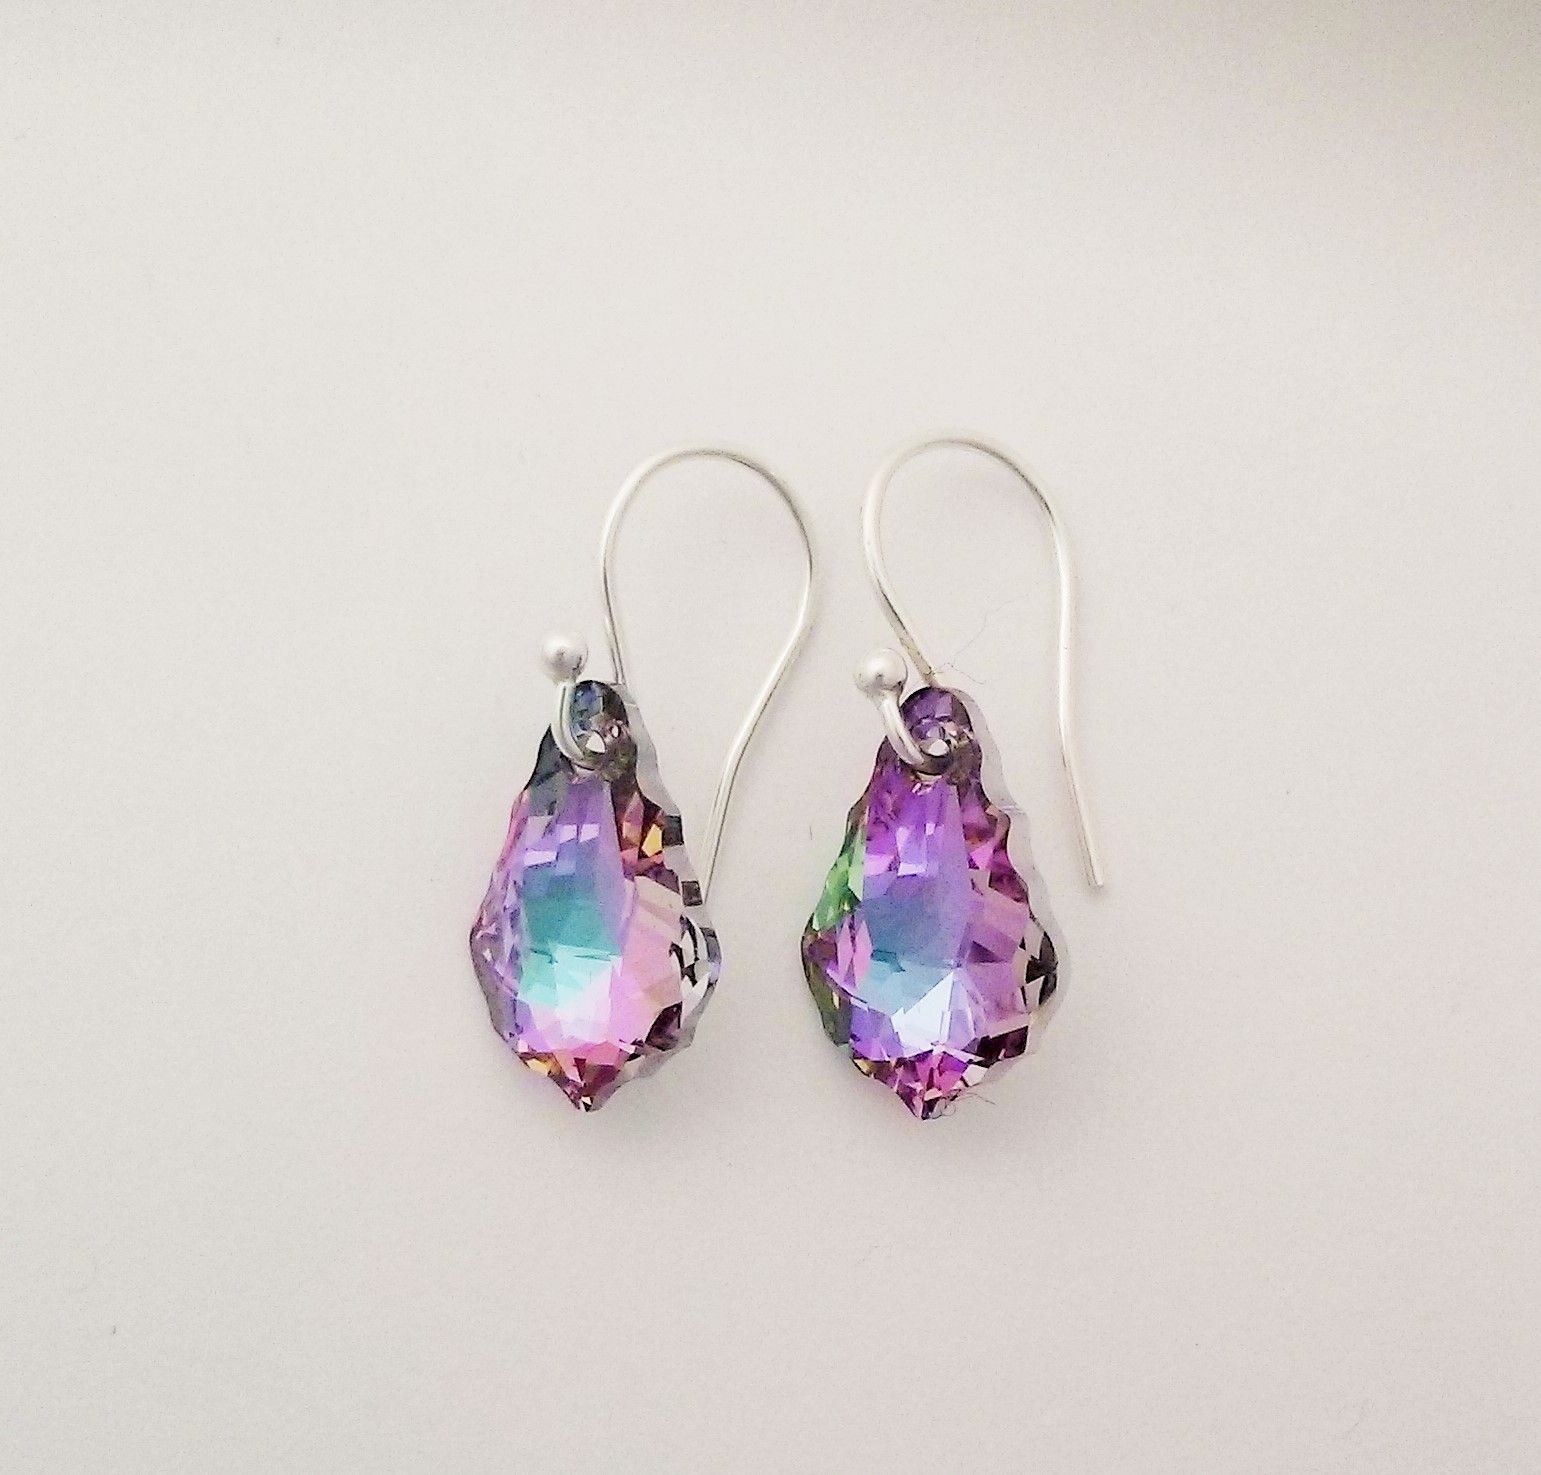 Swarovski Elements Earrings In Beautiful Shades Of Mauve And Blue